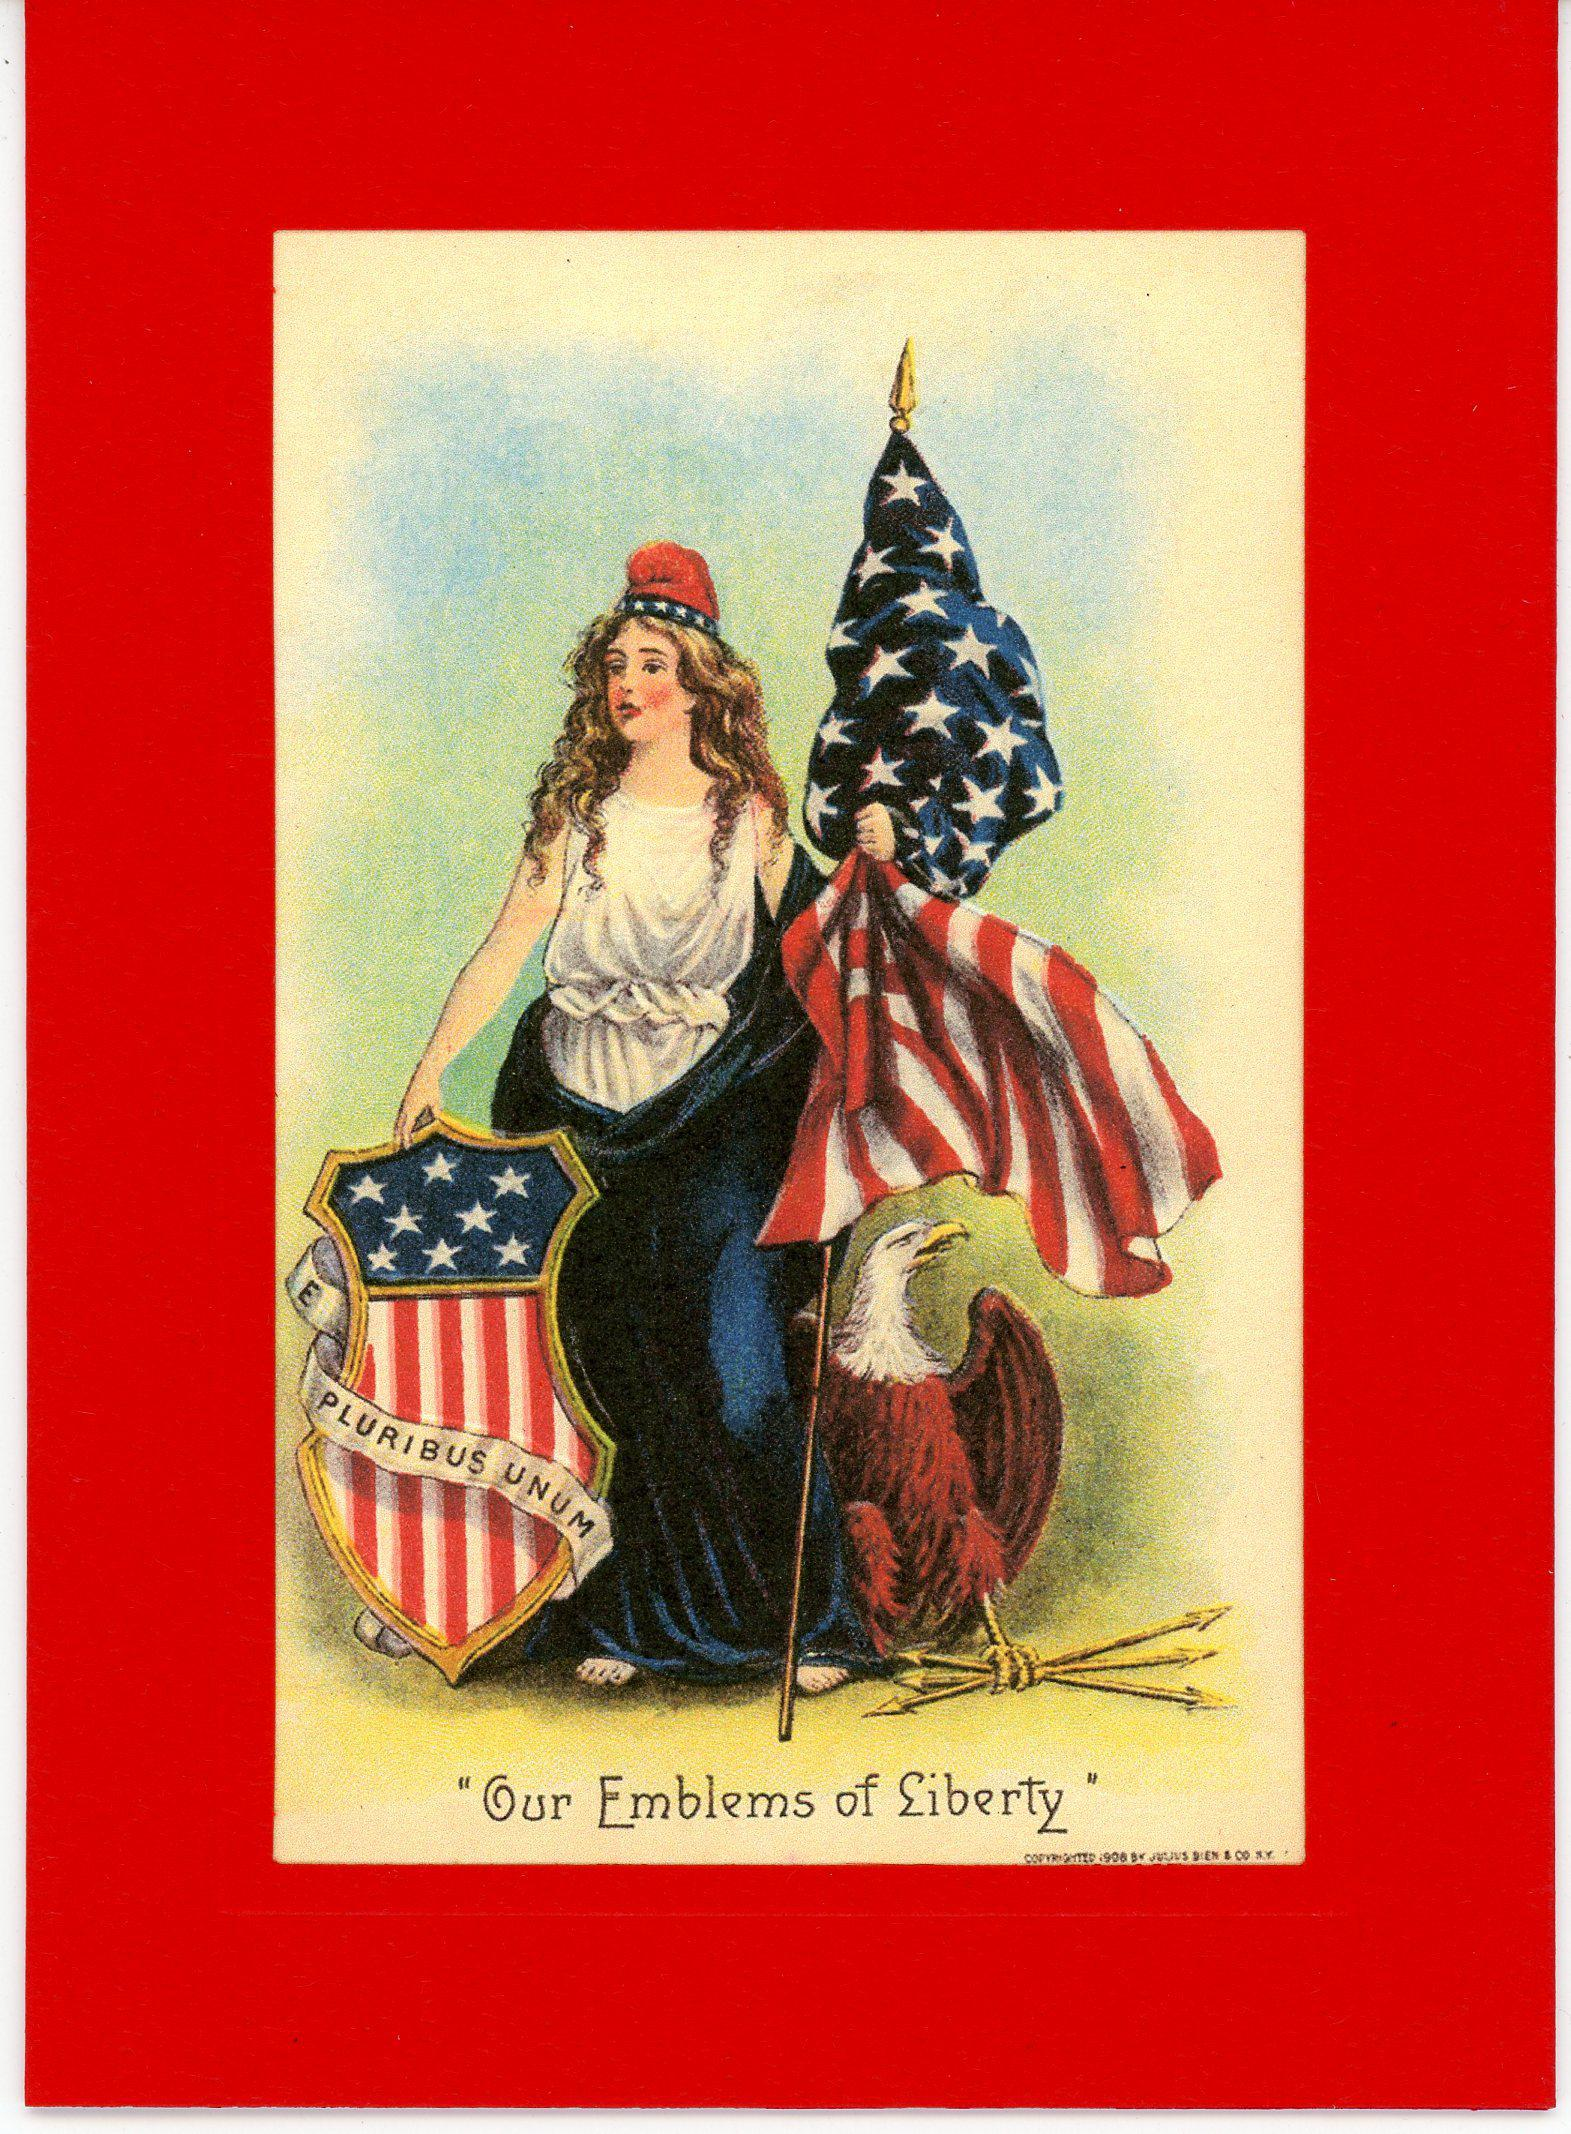 Our Emblems of Liberty-Greetings from the Past-Plymouth Cards